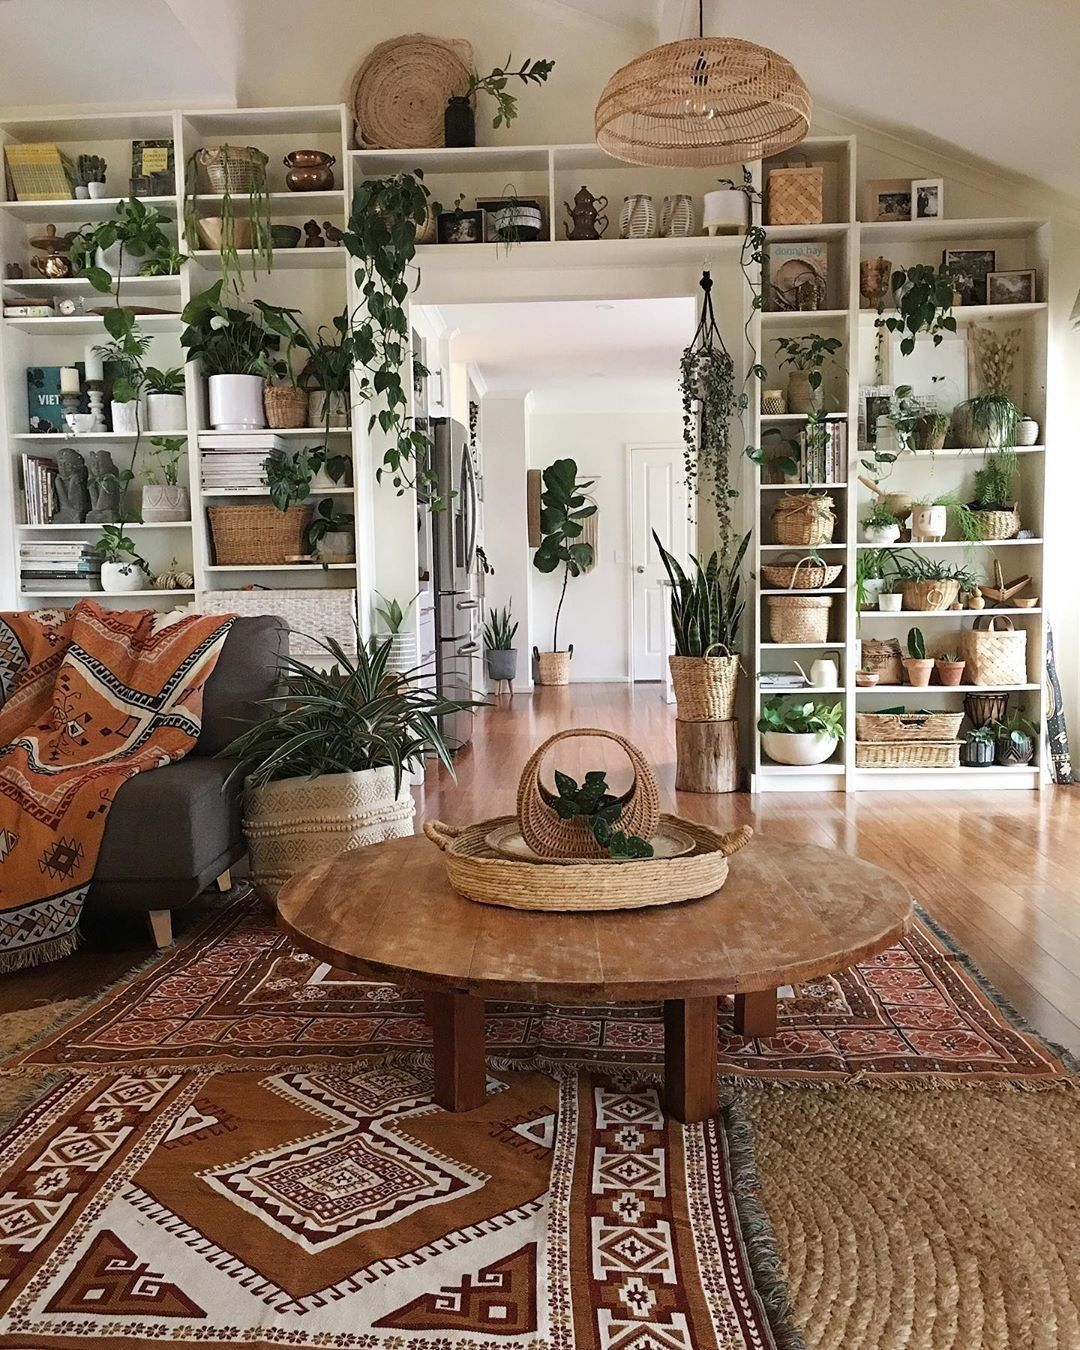 Photo 8 of 10 in 9 Plant-Filled Abodes You Should Follow on Instagram…